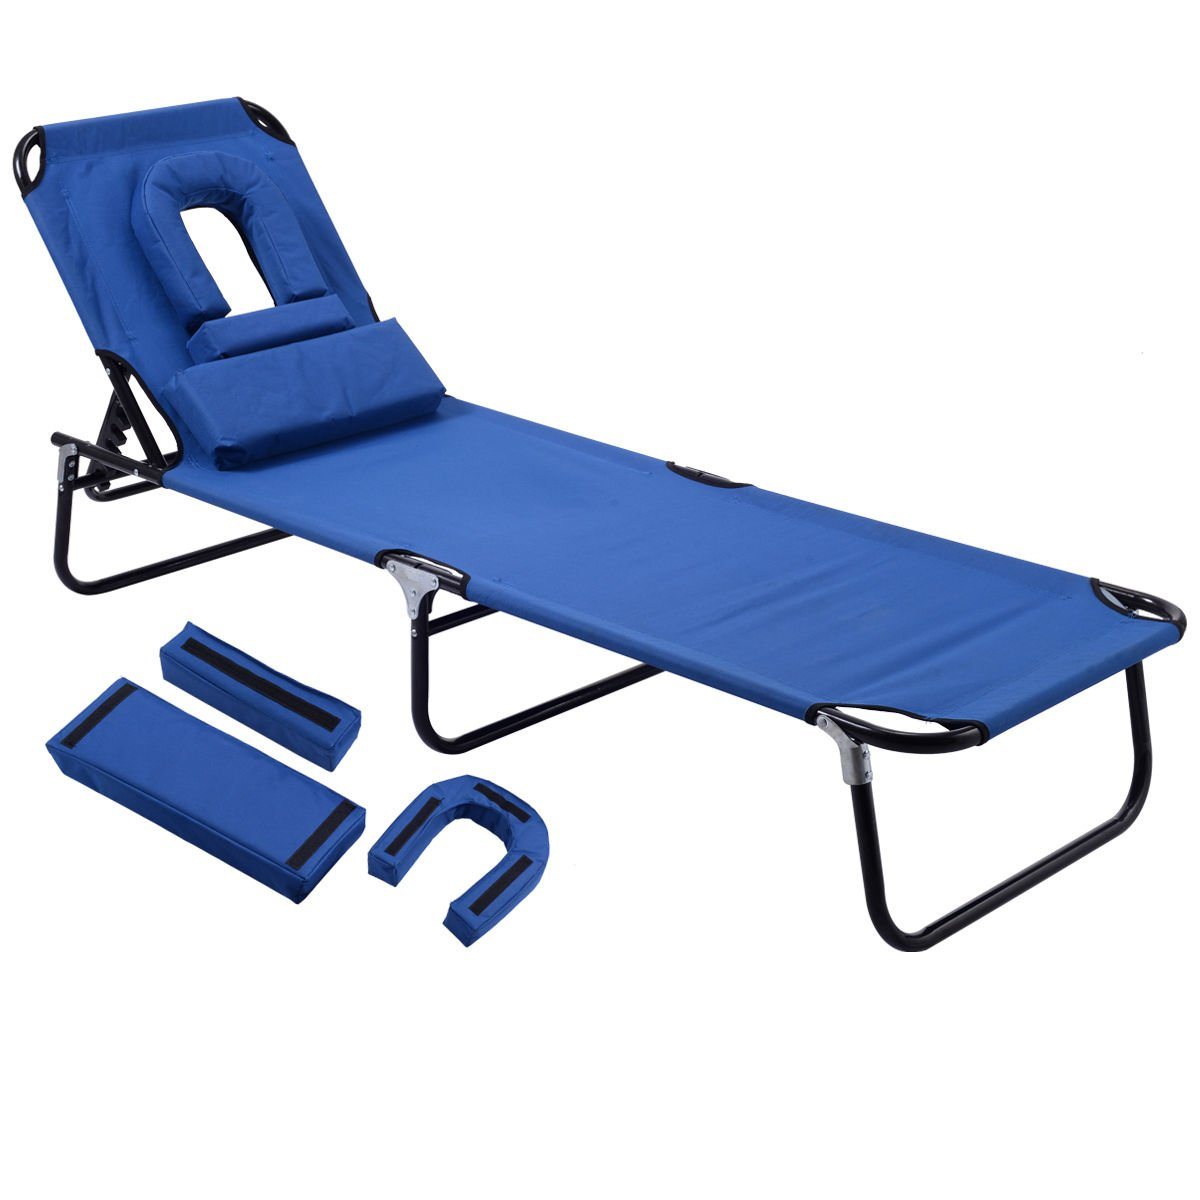 Folding outdoor lounge chair - Amazon Com Goplus Folding Chaise Lounge Chair Bed Outdoor Patio Beach Camping Recliner Pool Yard Garden Outdoor